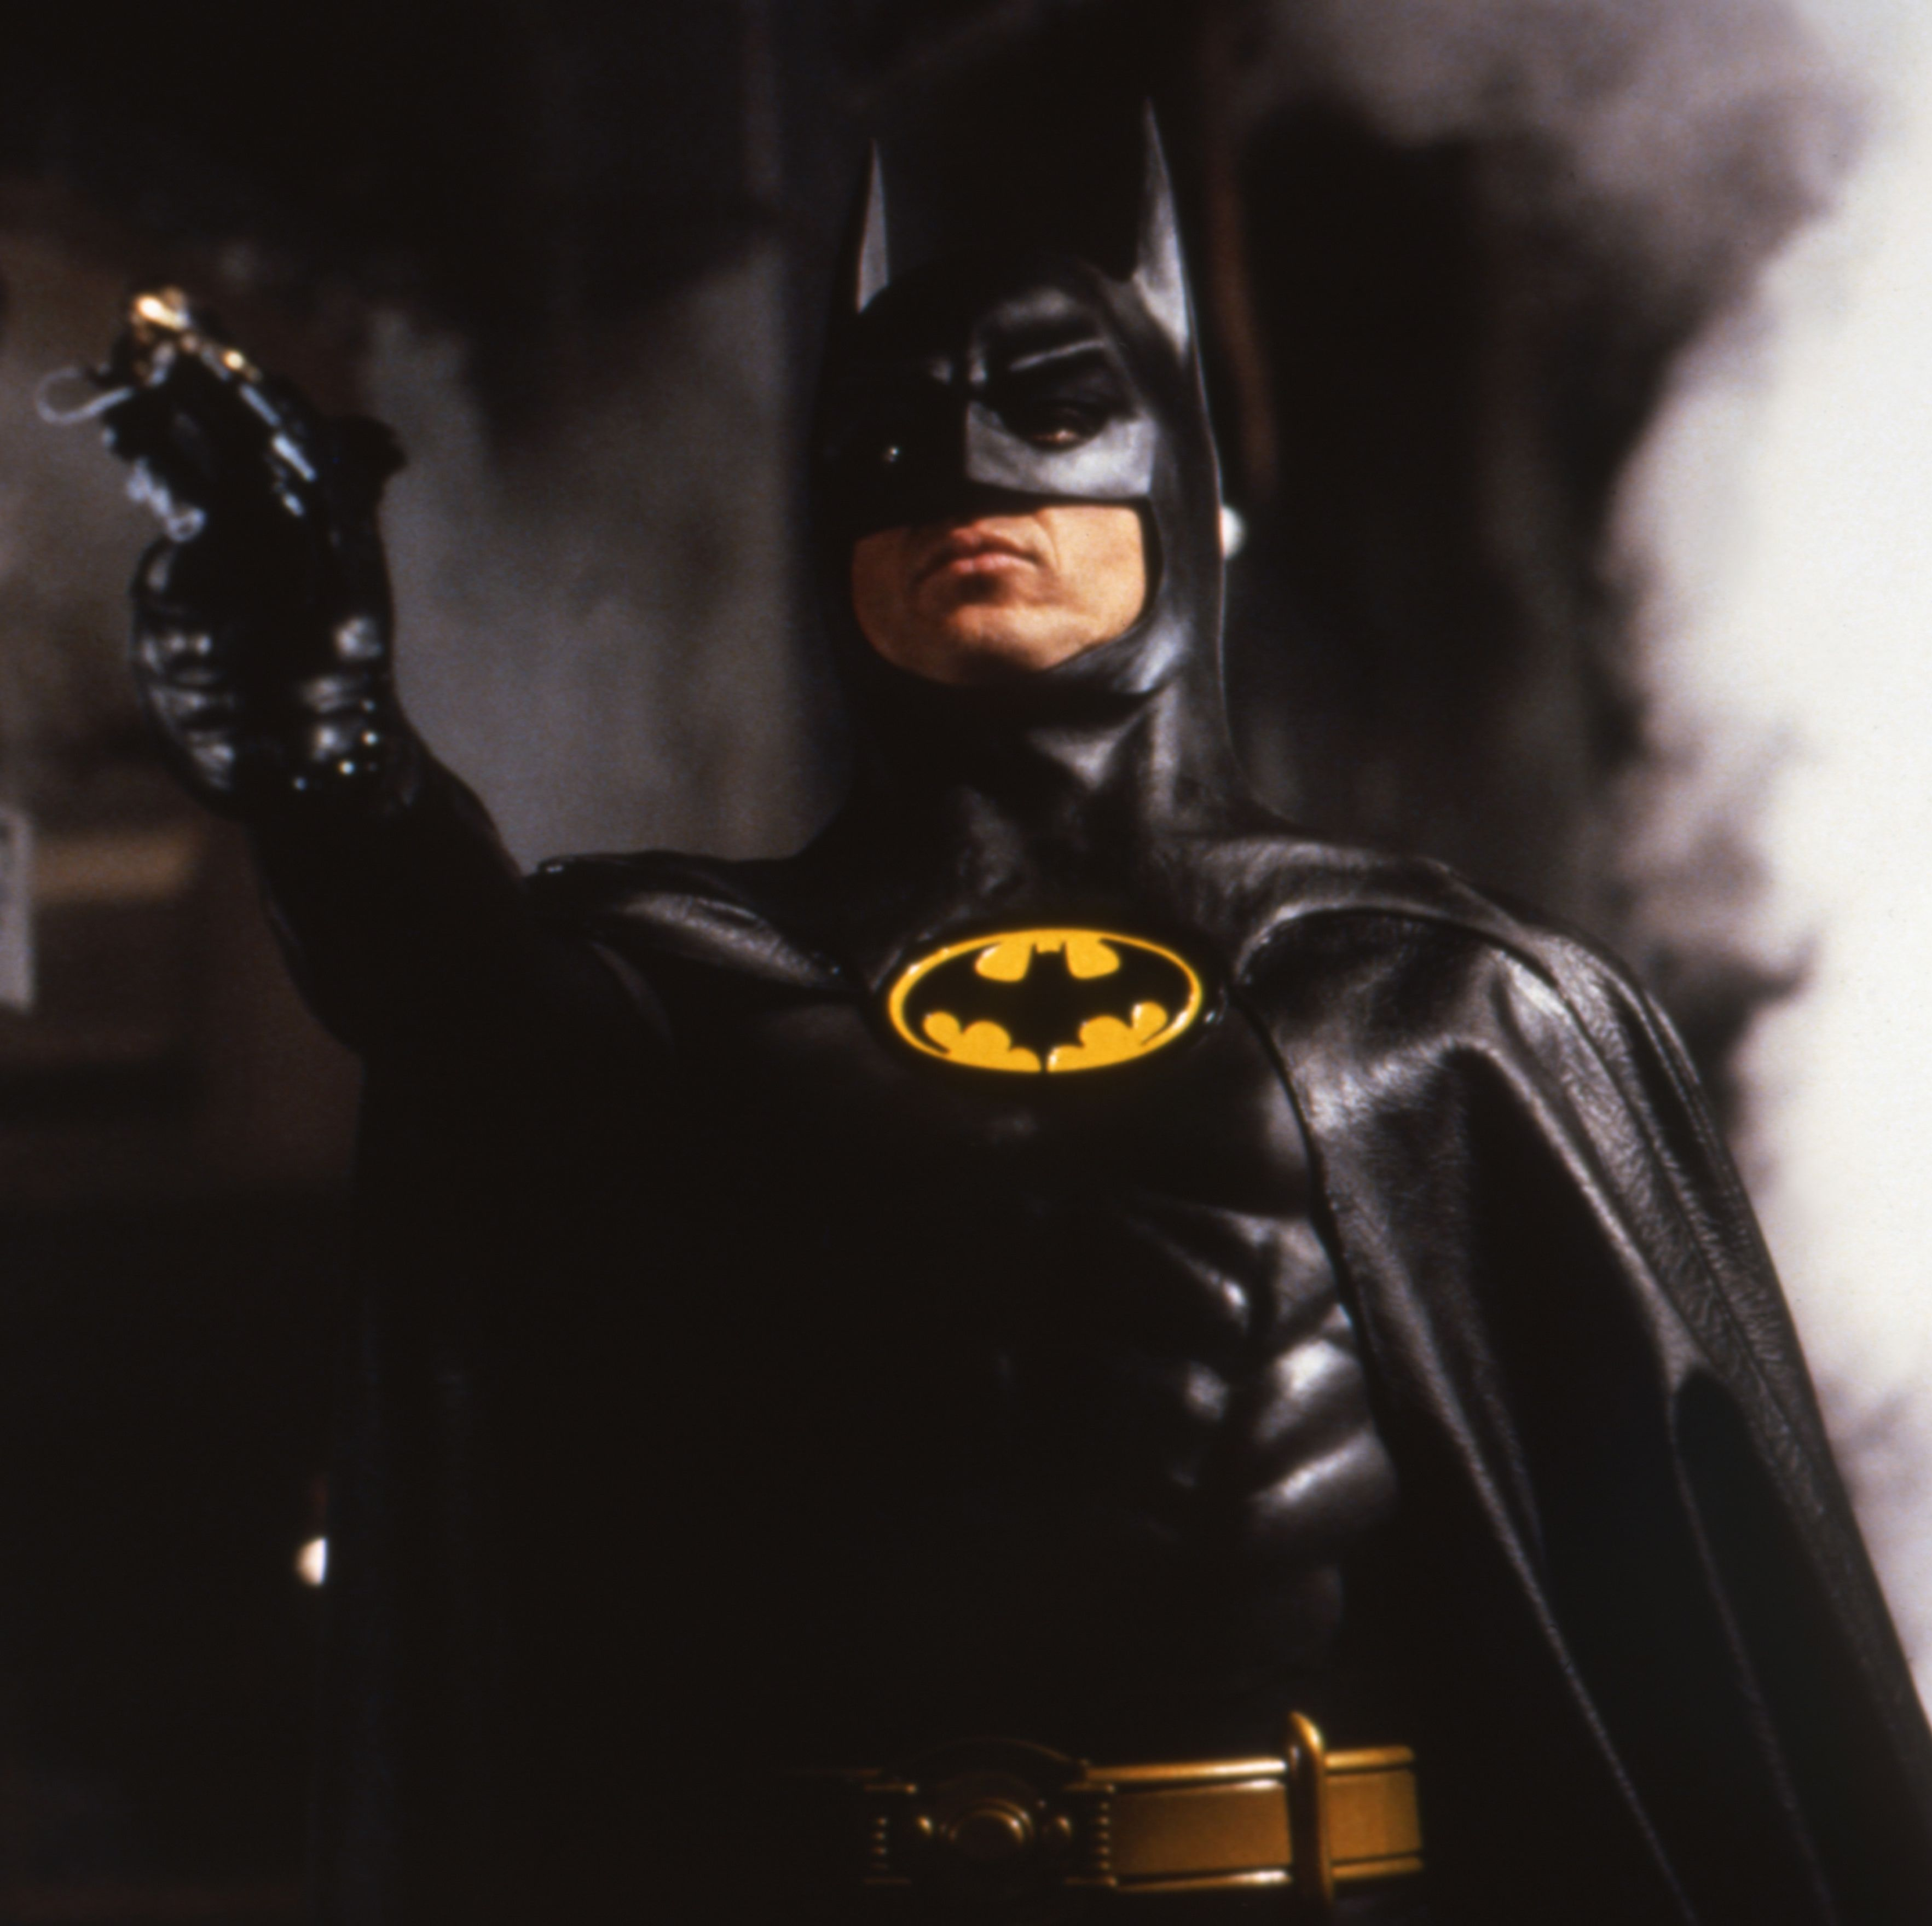 Michael Keaton as Batman in the 1989 Tim Burton film of the same name. Keaton dropped a line from the movie during his appearance on Saturday Night Live , where he played Julian Assange.